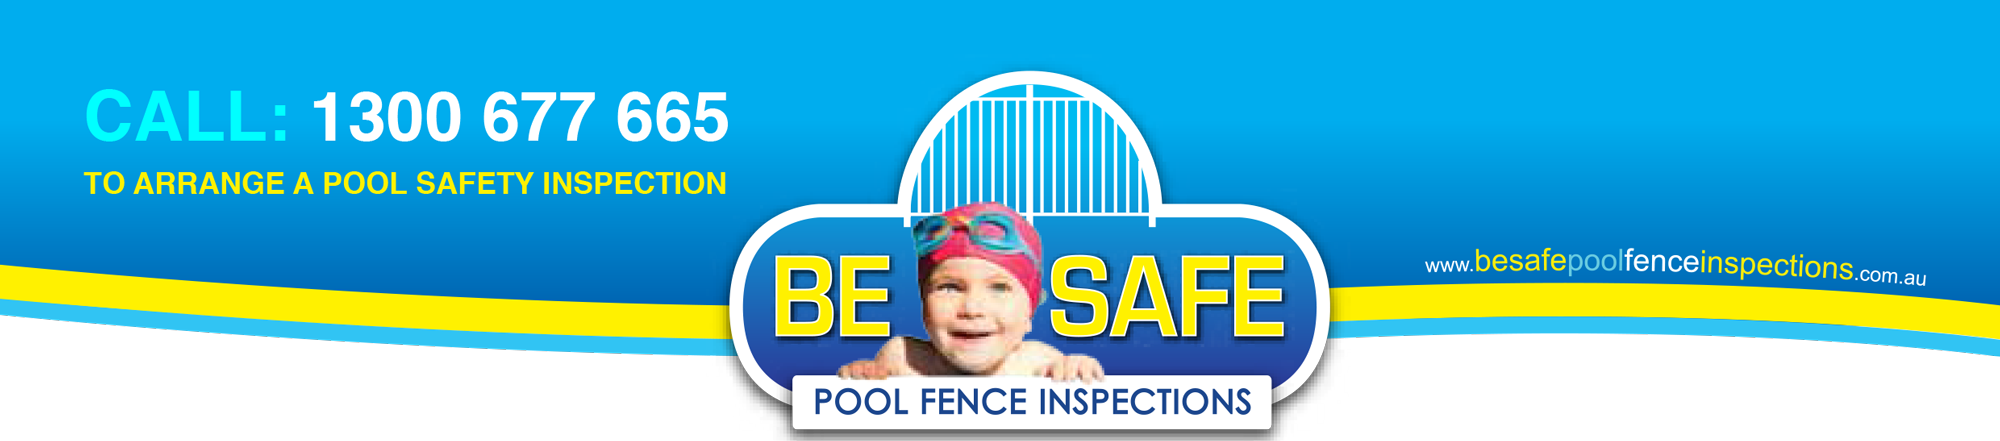 Be Safe Pool Fence Inspections | Brisbane Pool Fence Inspectors